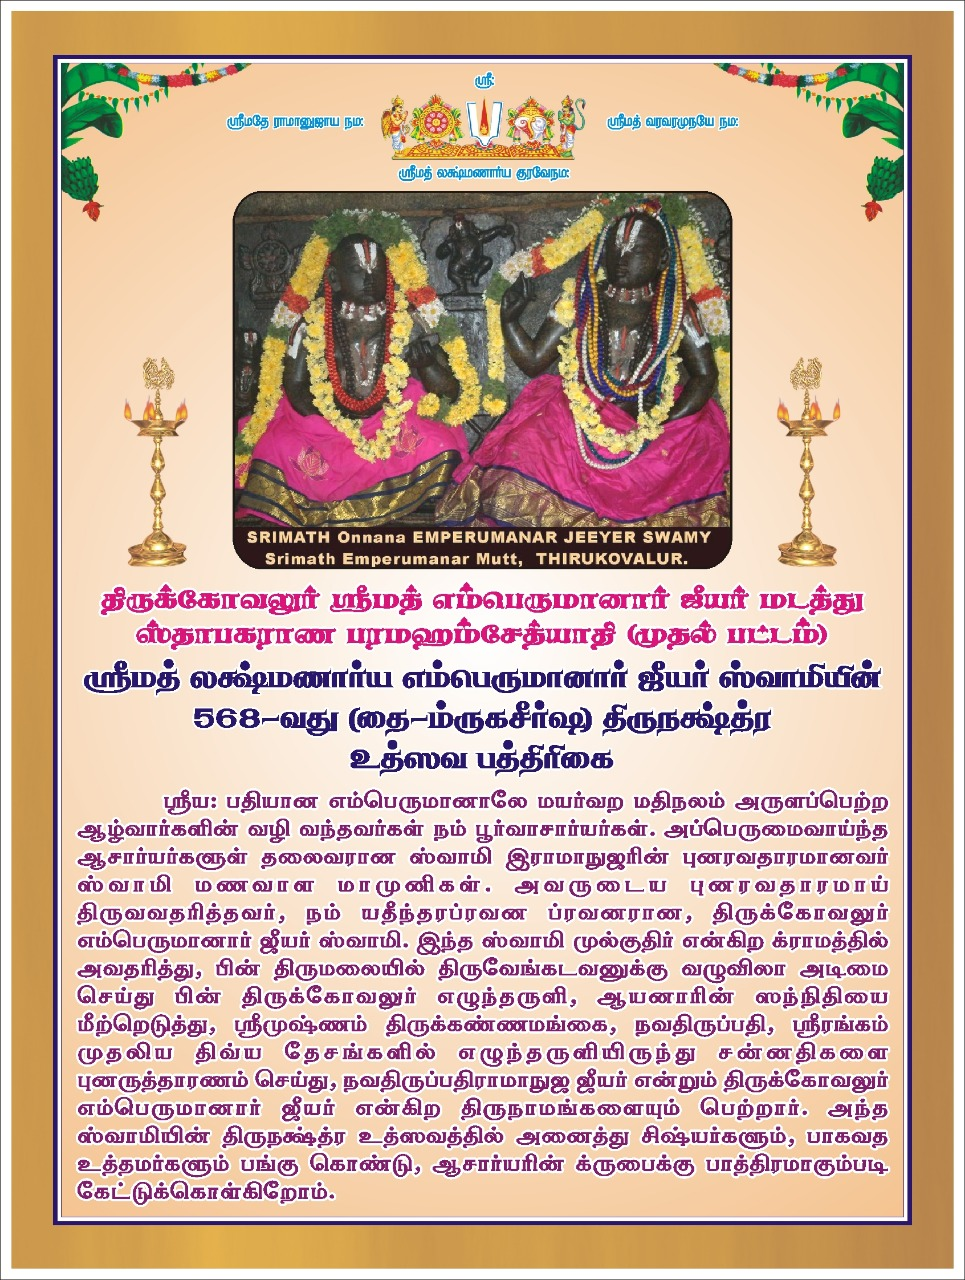 Thirukovalur Srimath Onnana Emperumanar Jeeyar Swamigal 568 Thirunakshatram Celebrations Invitation 1